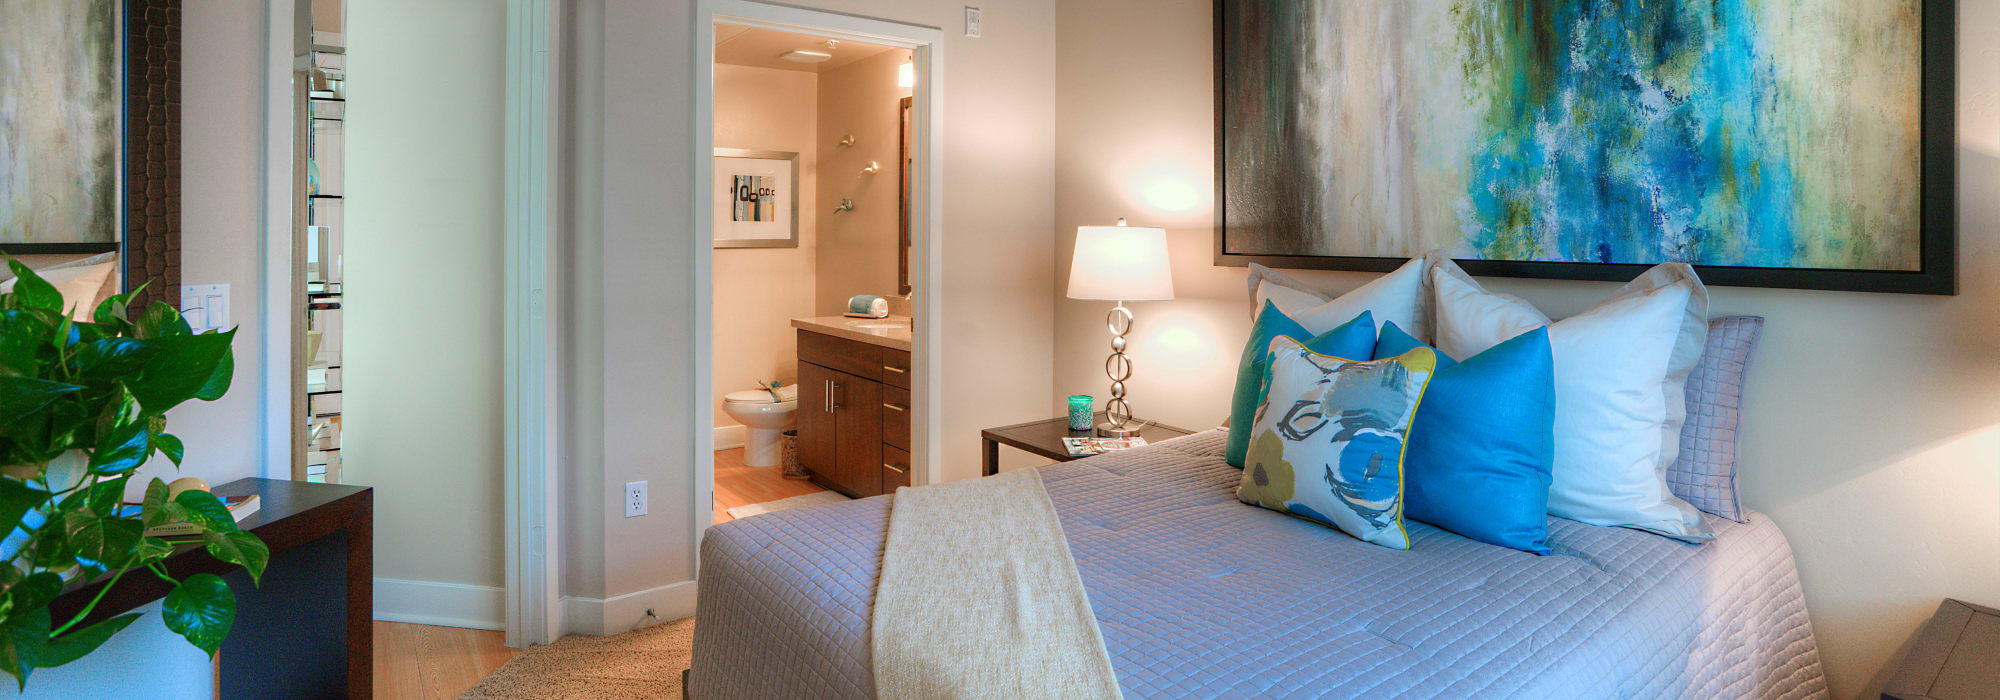 Master bedroom with en suite bathroom in model home at Level at Sixteenth in Phoenix, Arizona